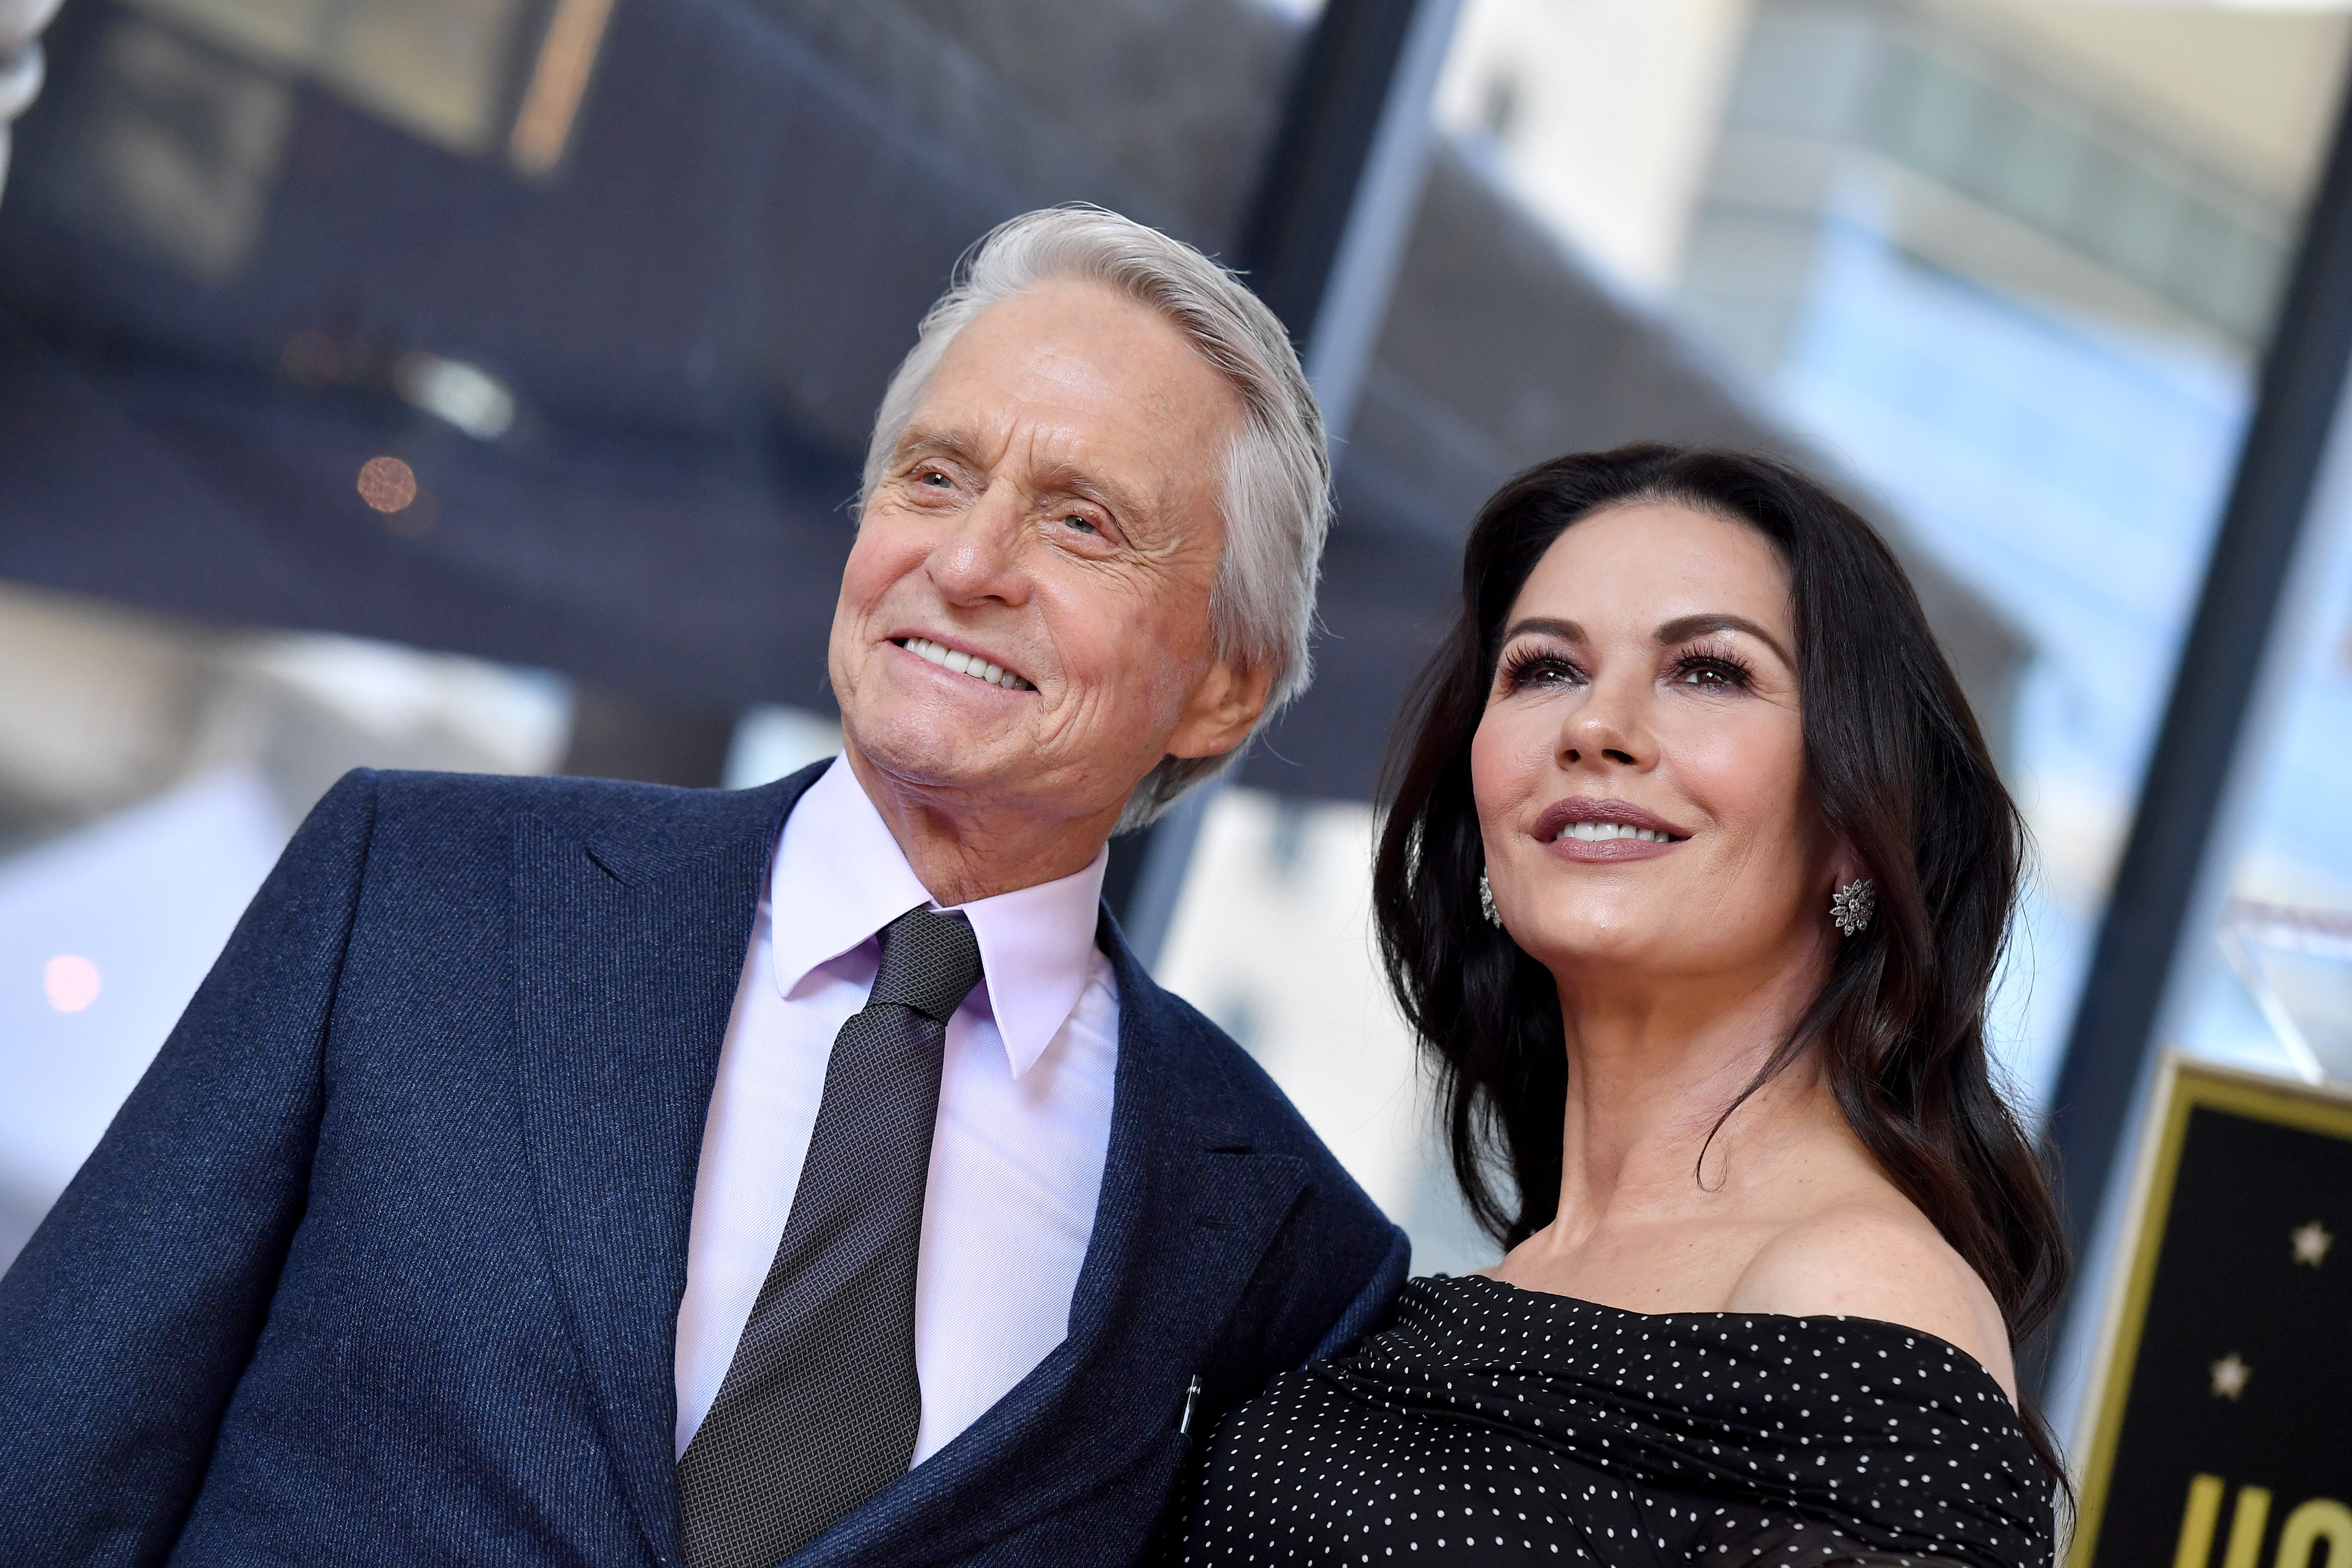 Michael Douglas and Catherine Zeta-Jones attend the ceremony honoring her husband with a star on the Hollywood Walk of Fame on November 6, 2018. | Photo: Getty Images